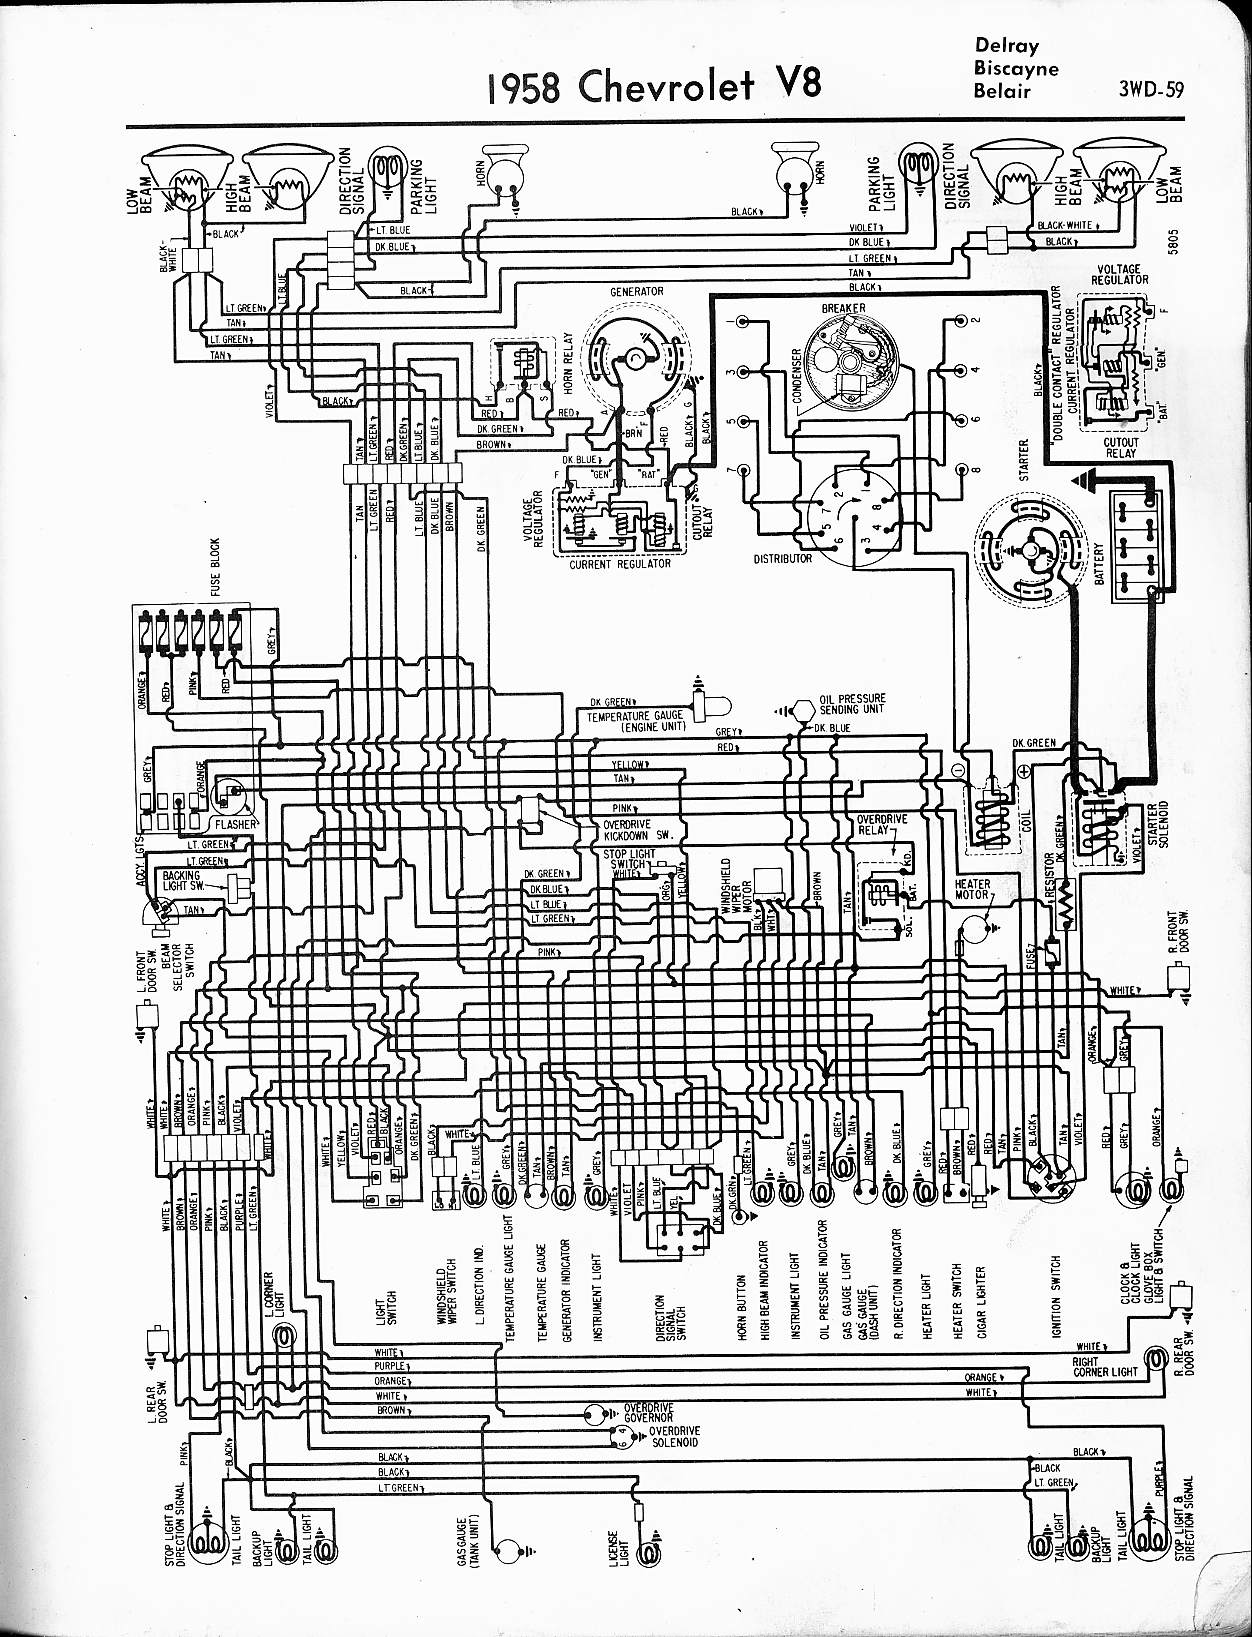 Chevy Wiring Diagram Data 1989 Caprice 57 65 Diagrams Distributor 1958 V8 Delray Biscayne Belair